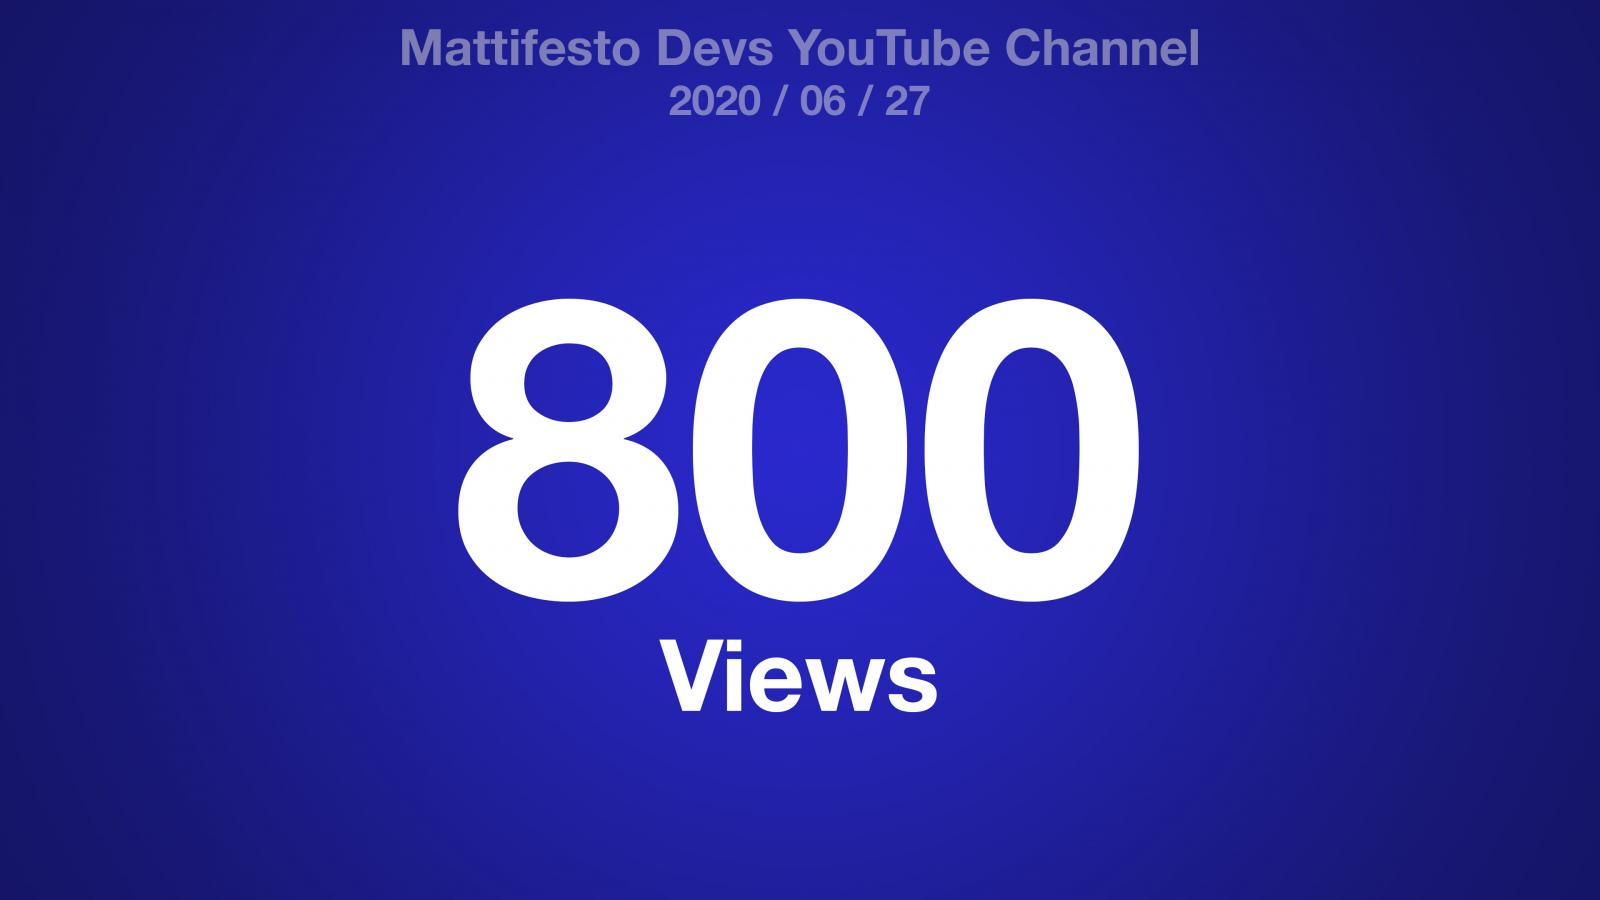 Mattifesto Devs YouTube Channel 2020/06/27 800 Views